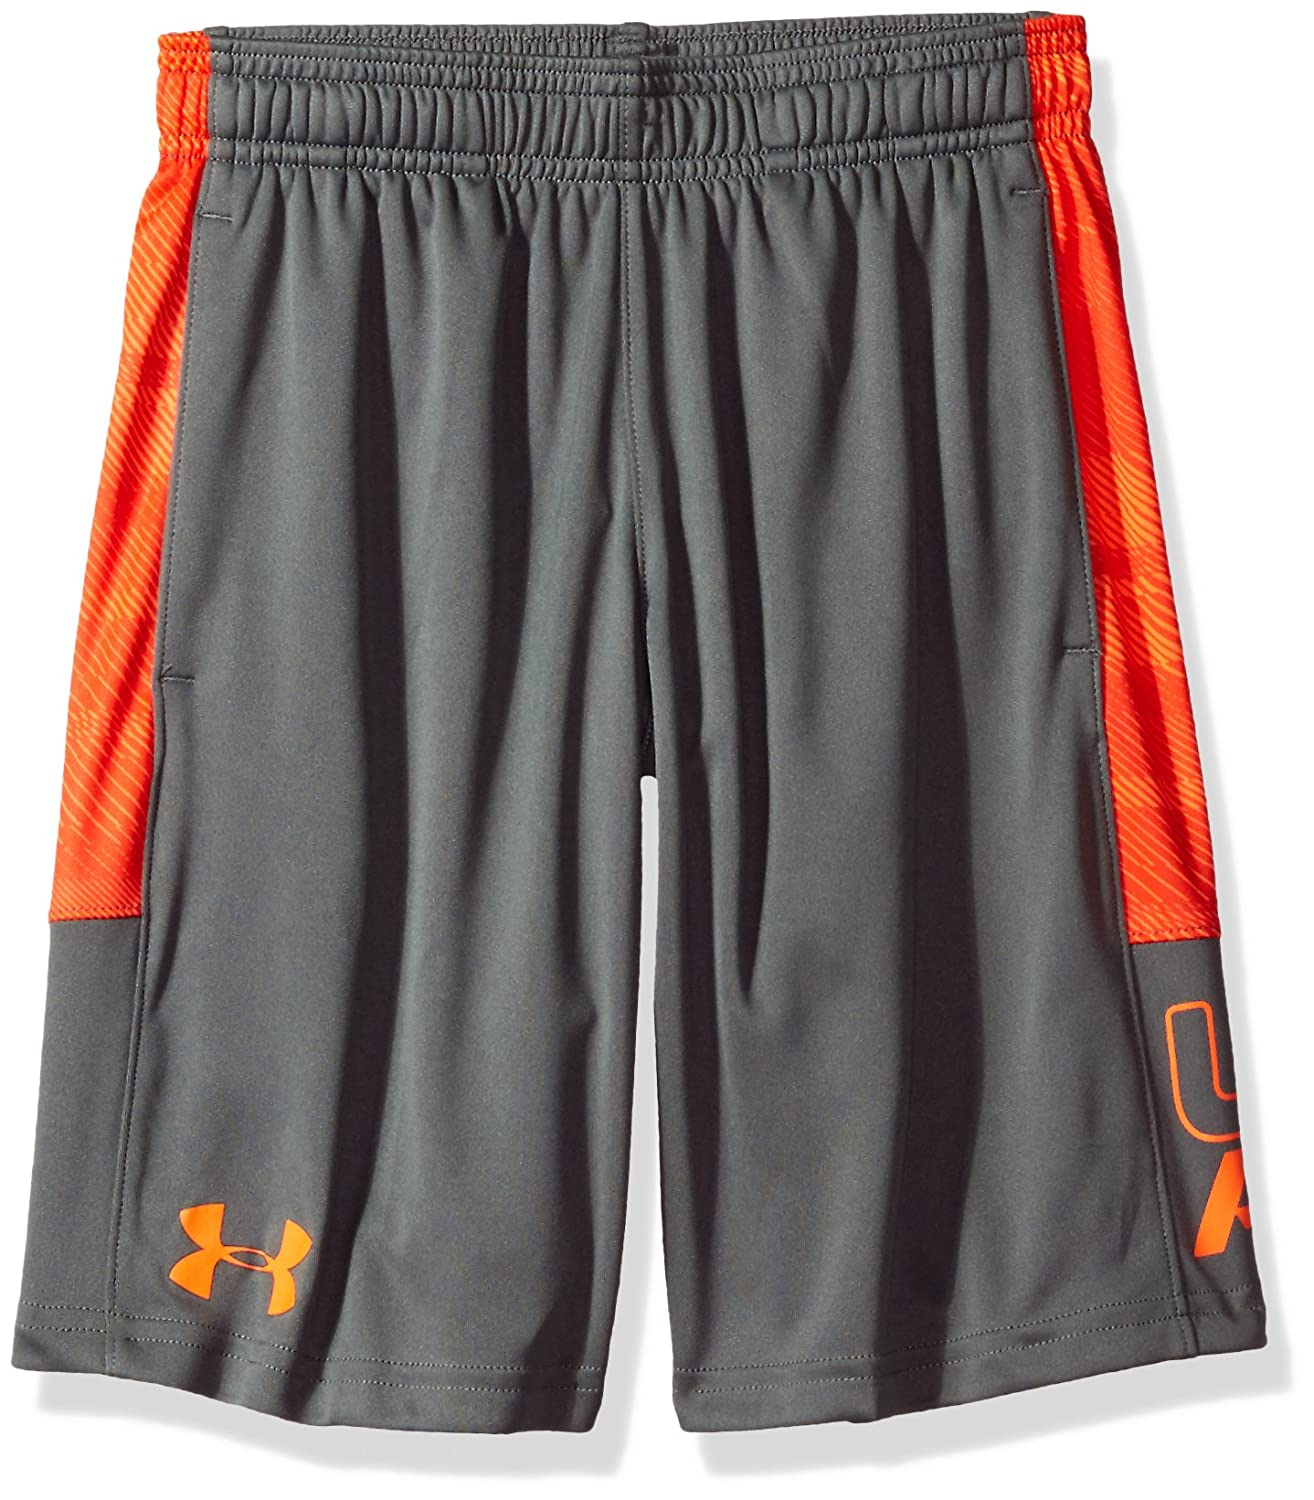 Under Armour Ua Stunt Printed Short, Pantaloncino Bambino 1299998-007